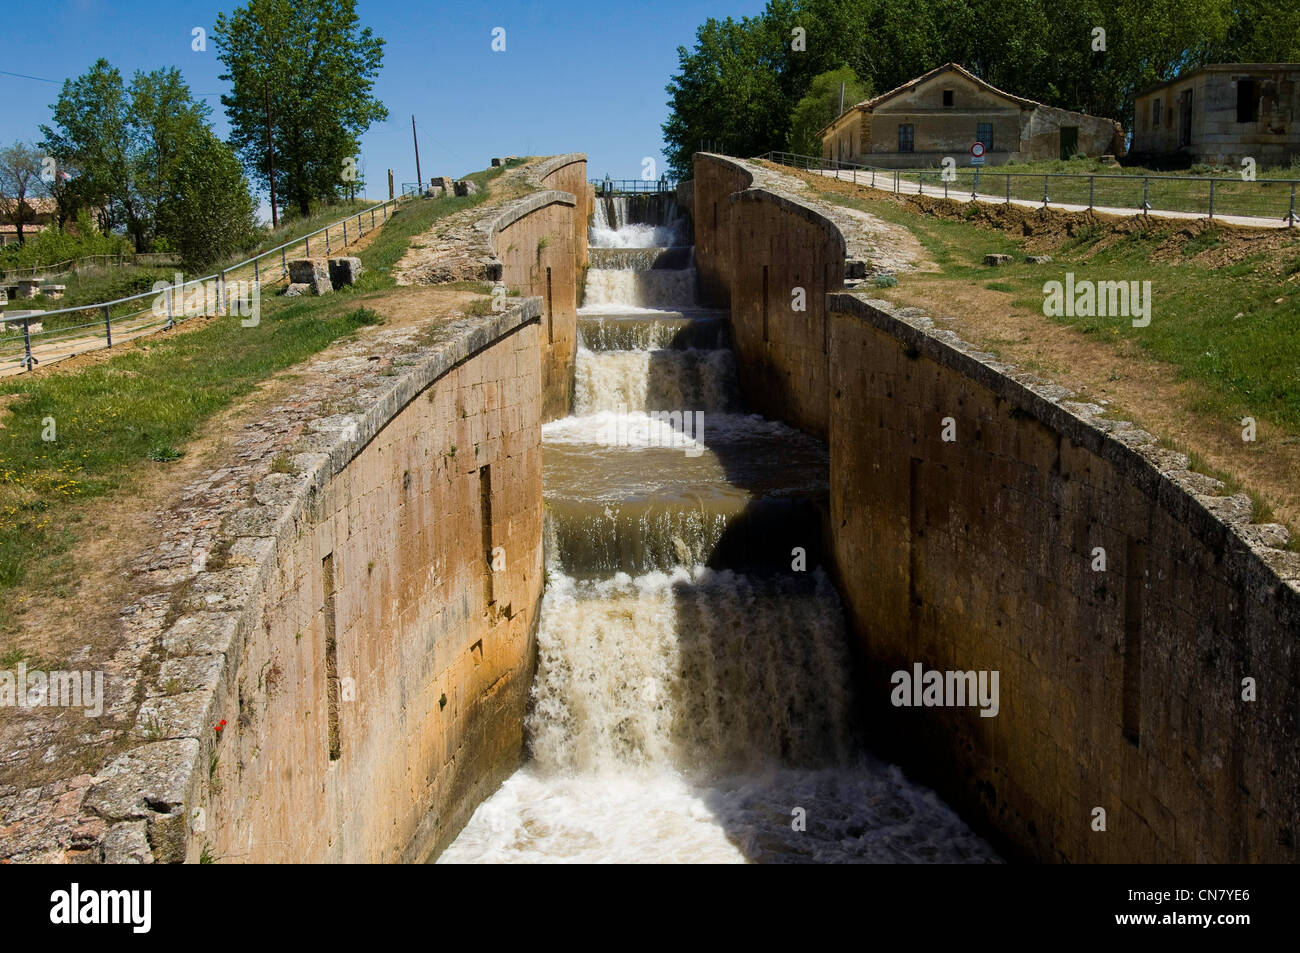 Spain, Castile and Leon, Fromista, a stop on el Camino de Santiago, royal locks - Stock Image